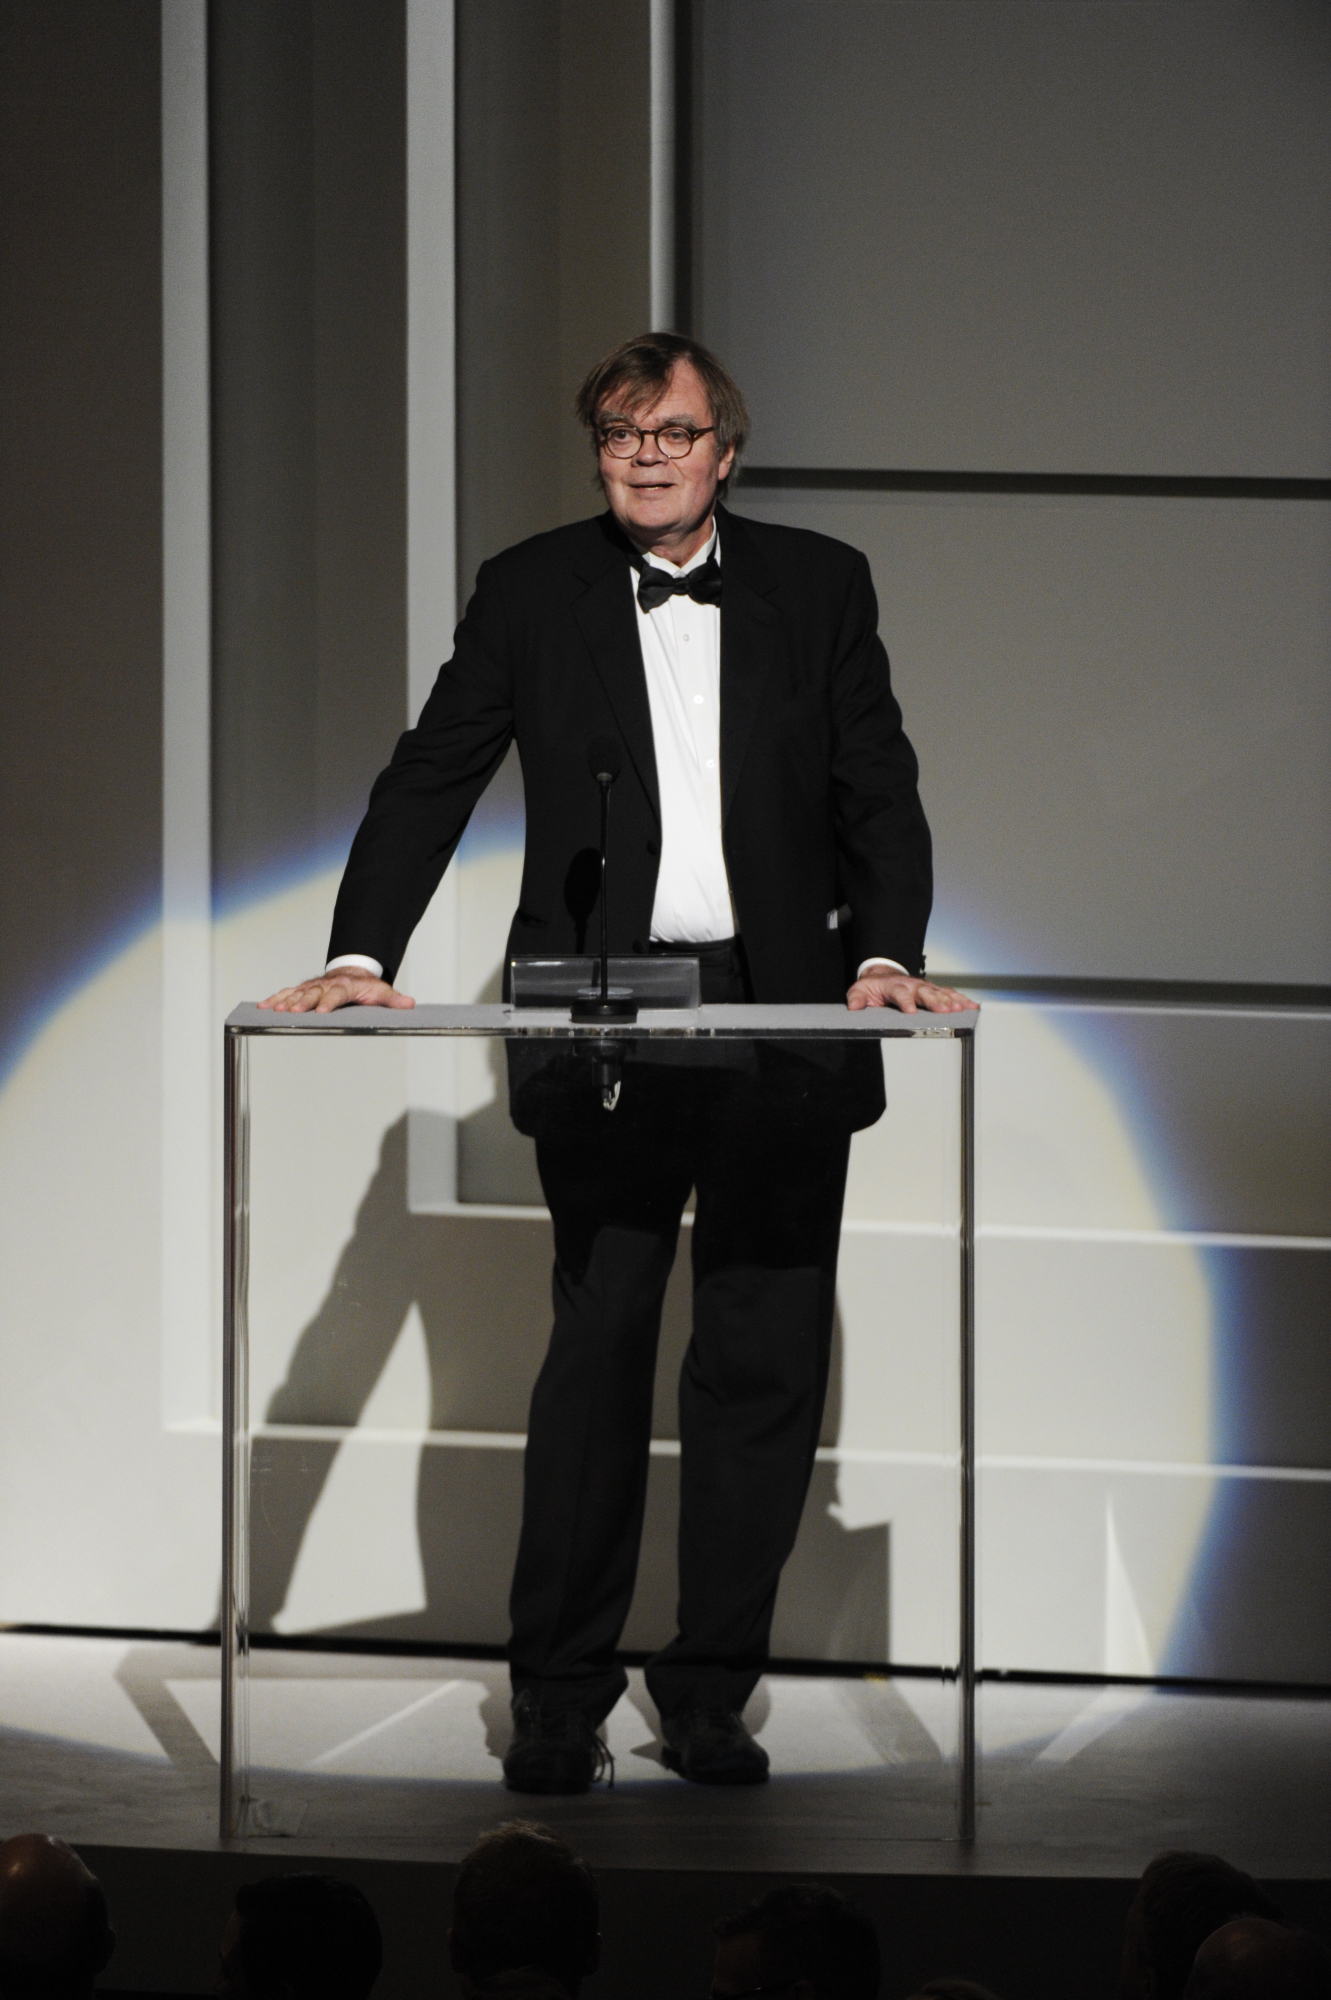 Garrison Keillor Speaks at the 37th Annual Kennedy Center Honors